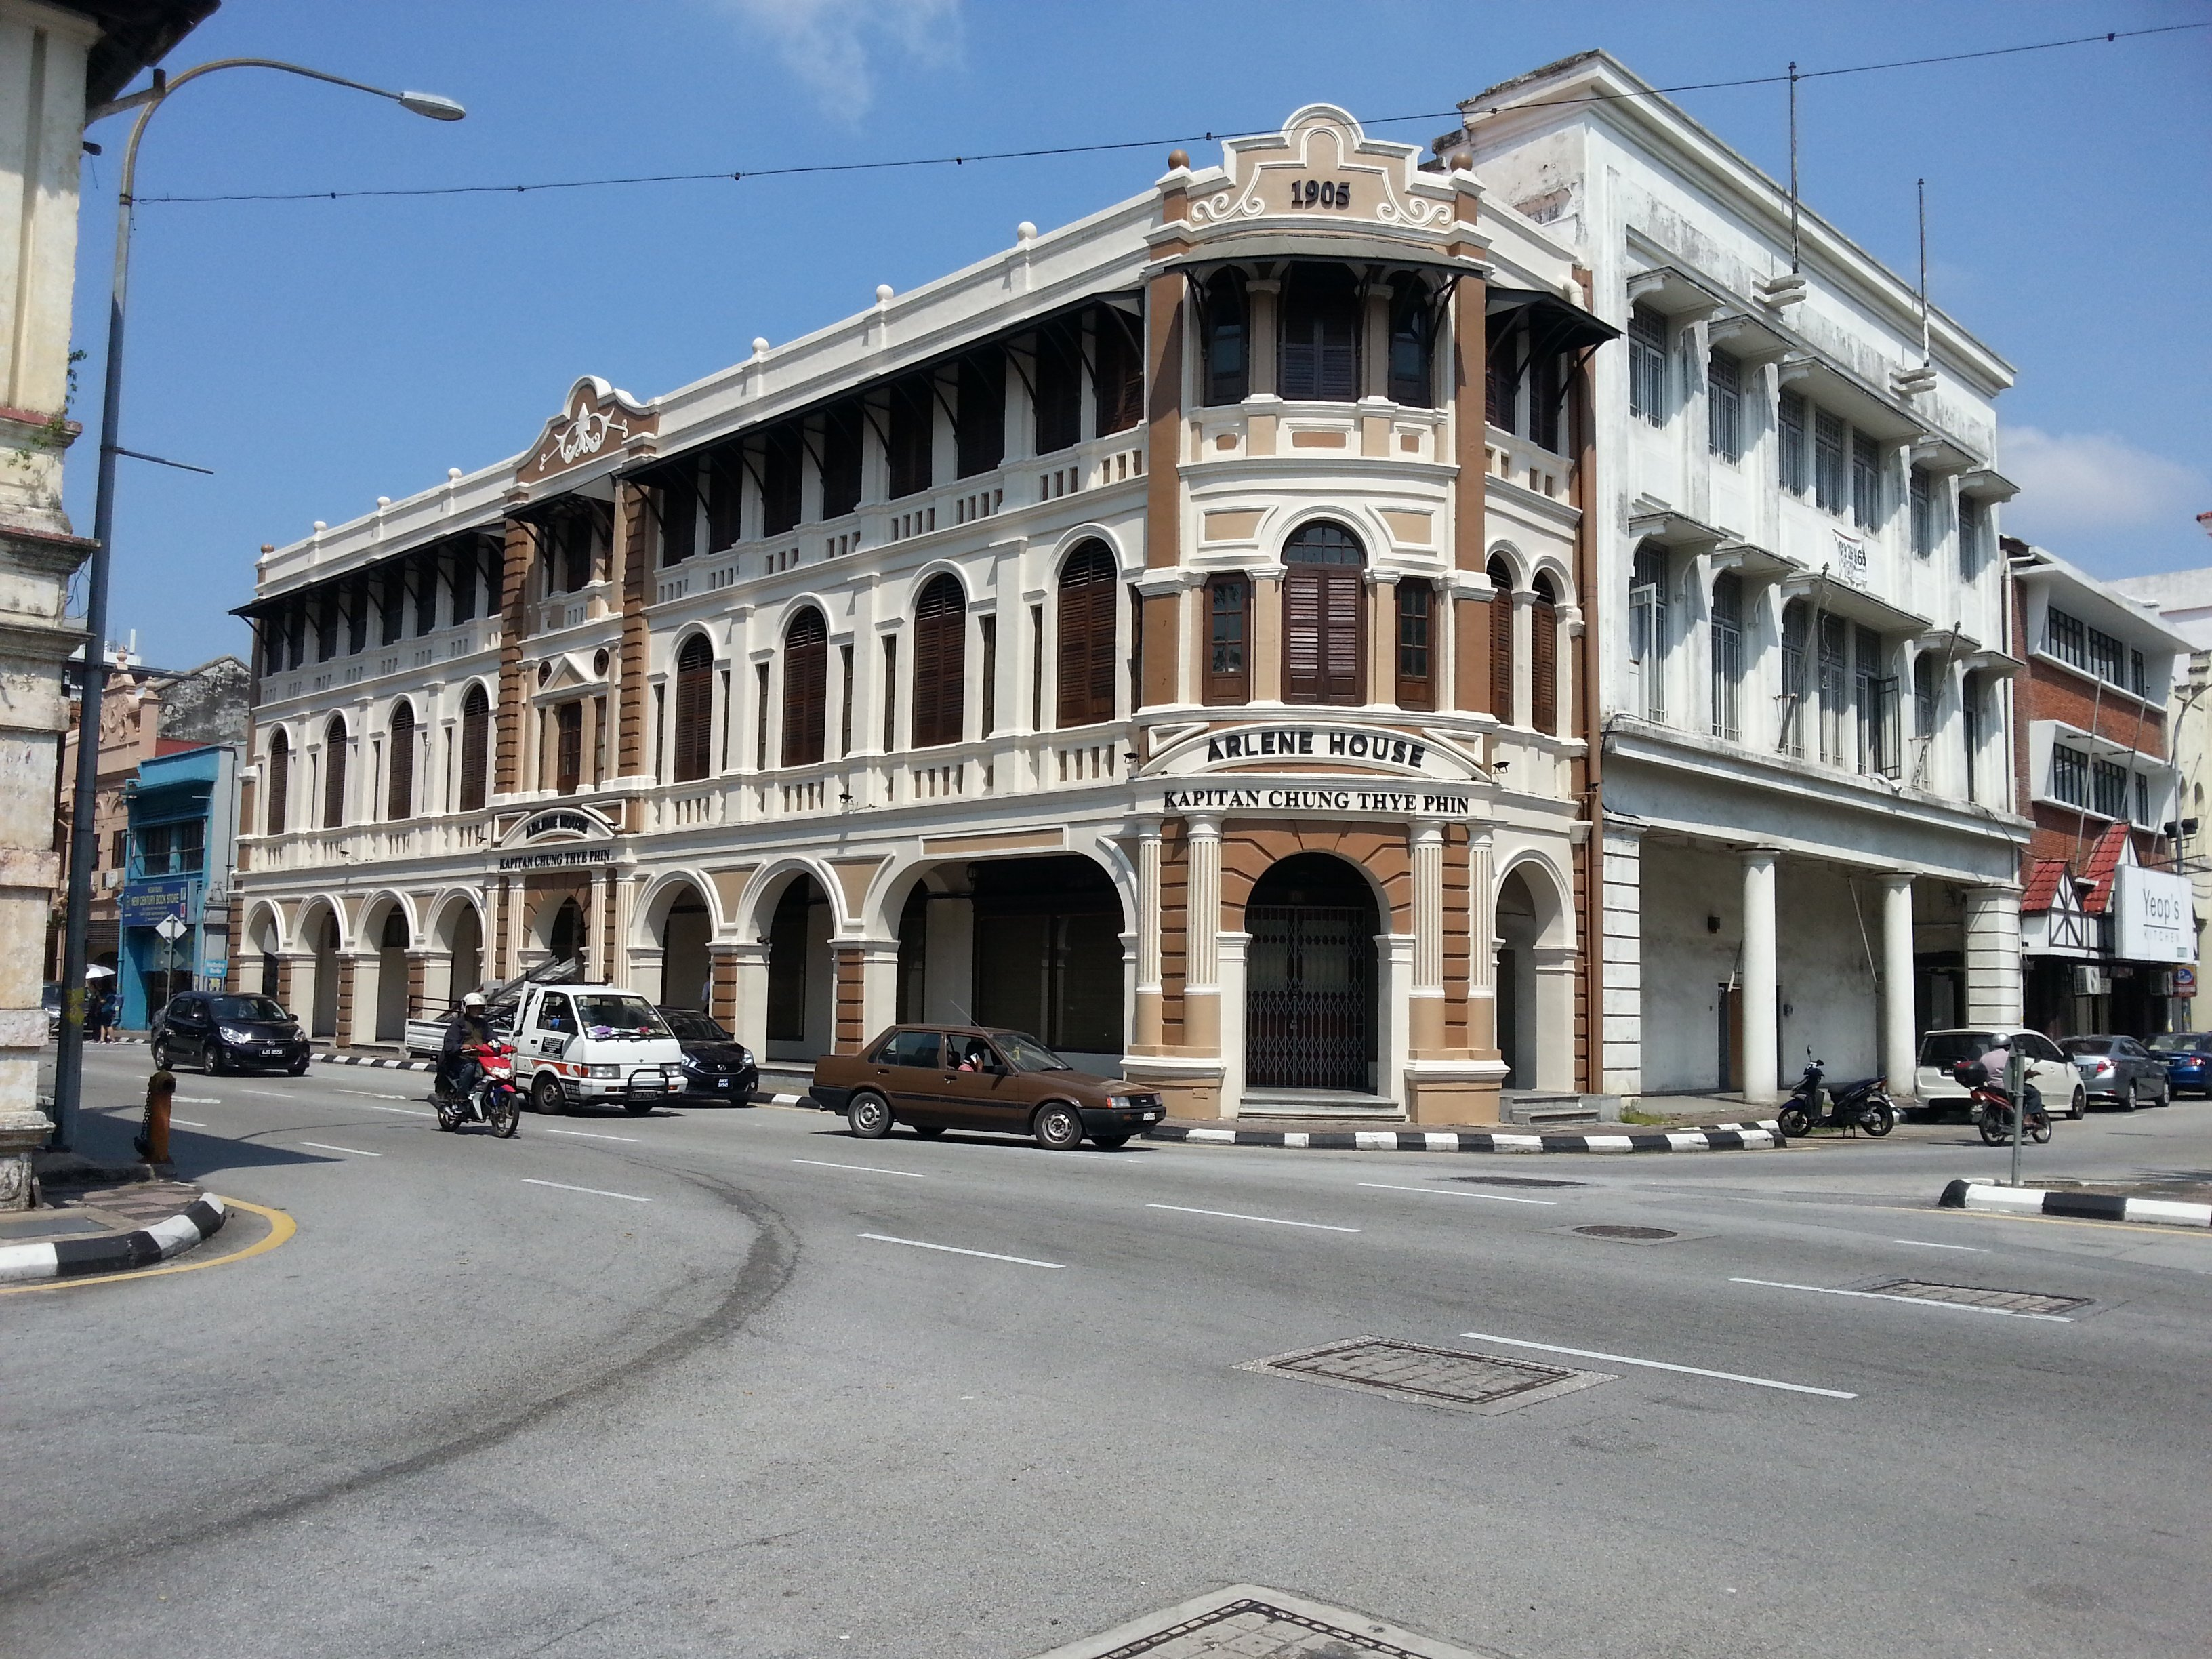 Arlene House in Ipoh